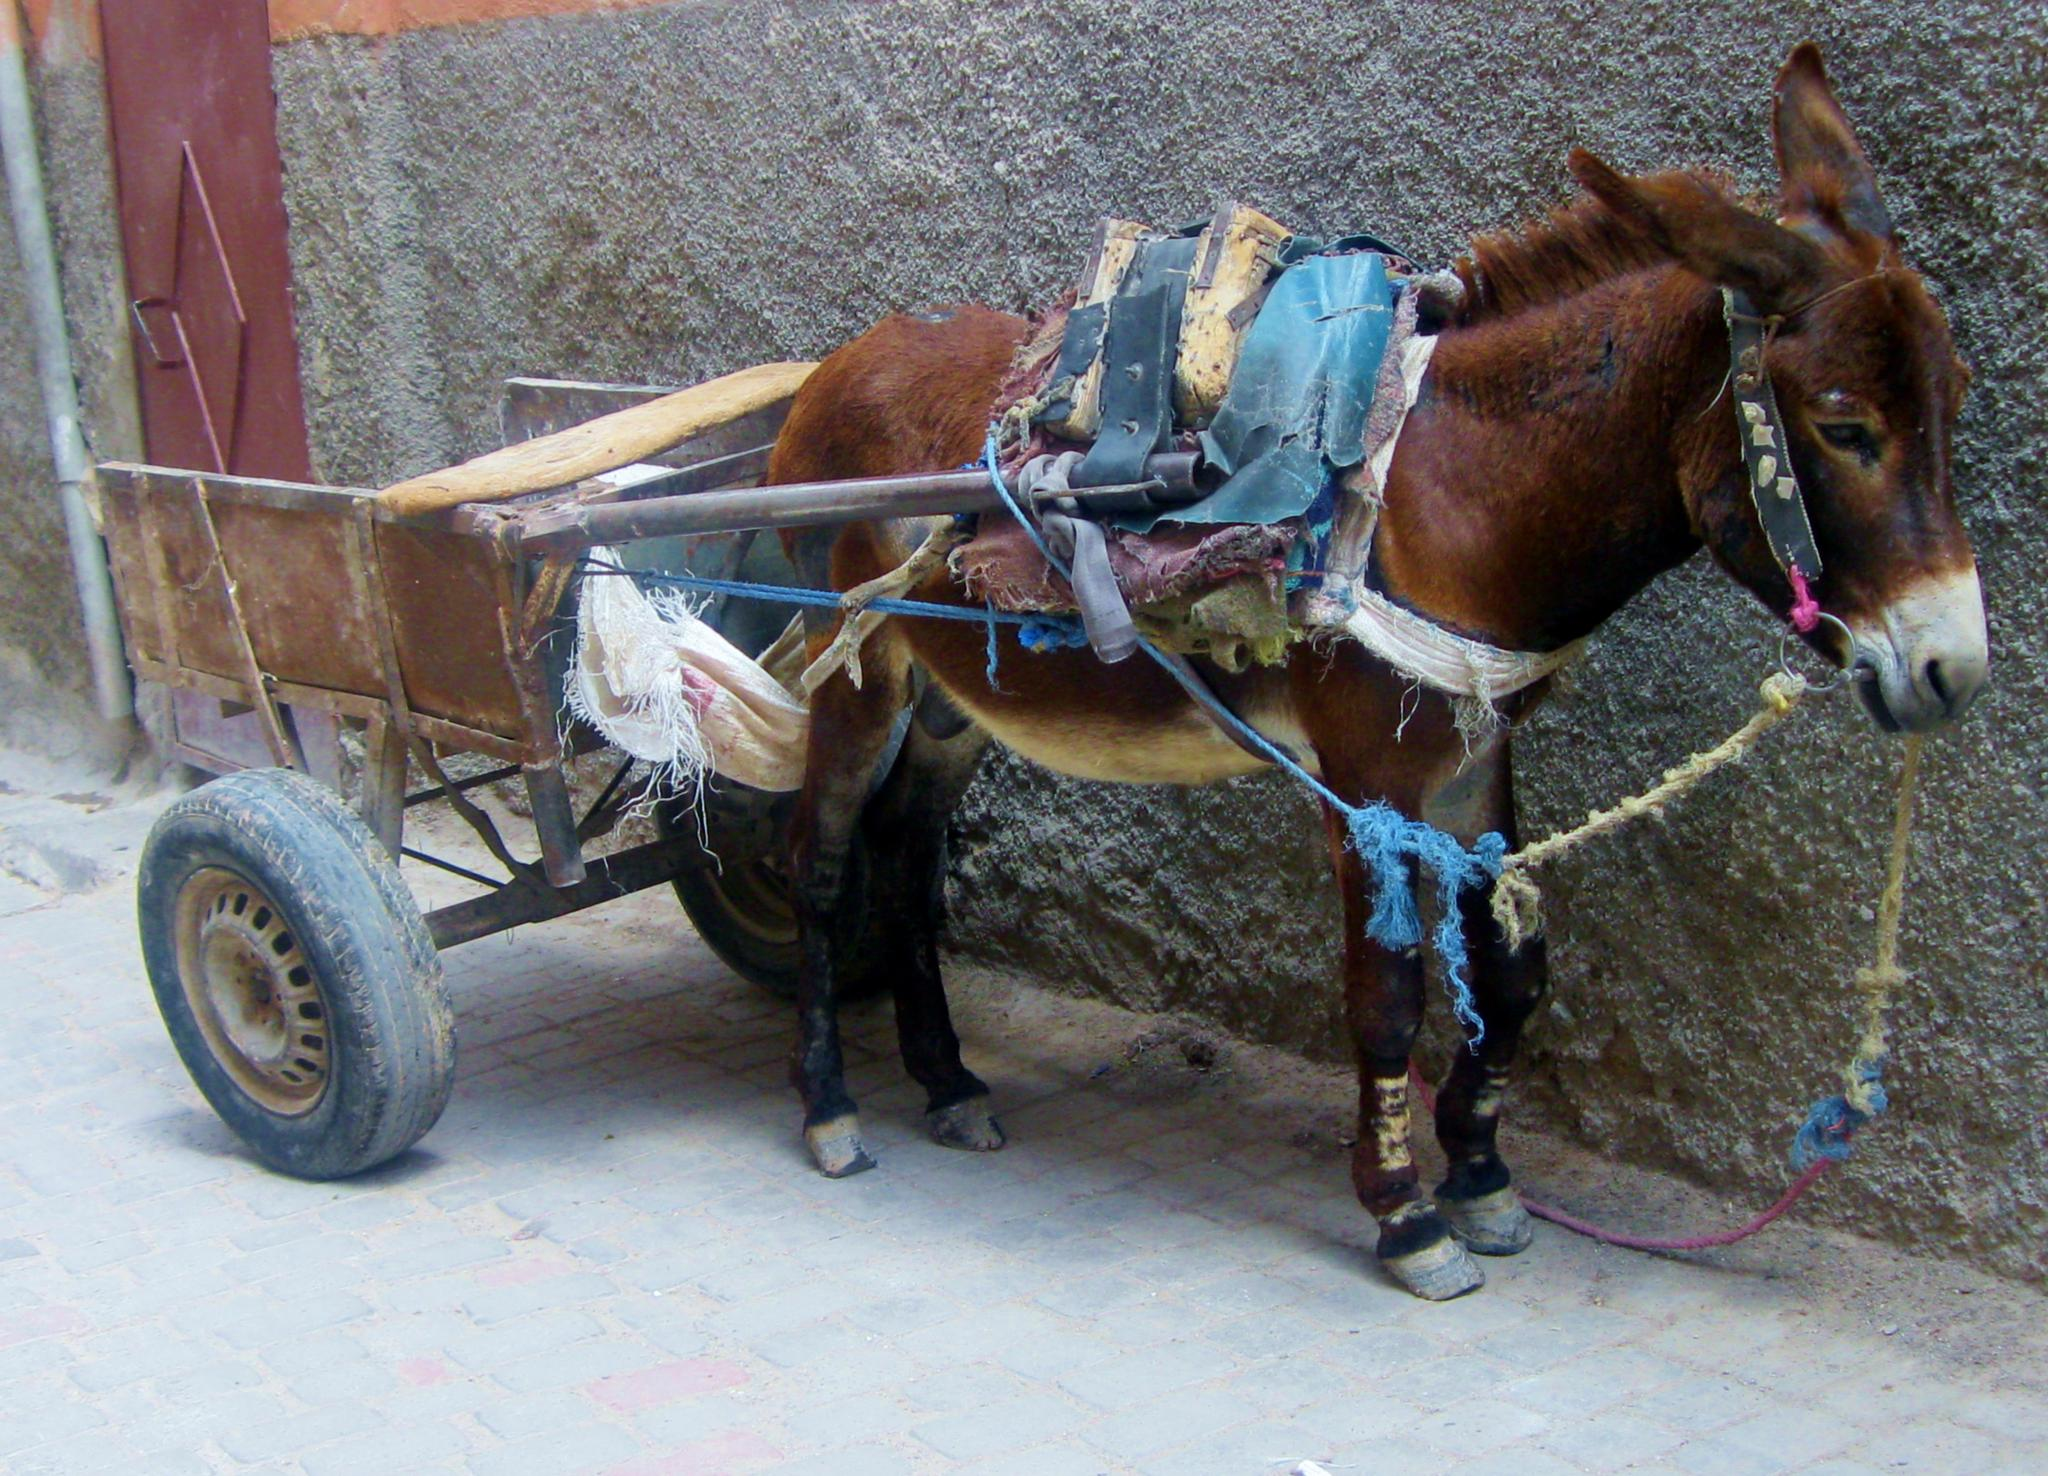 Working Donkey in Marrakech by patricia_collins